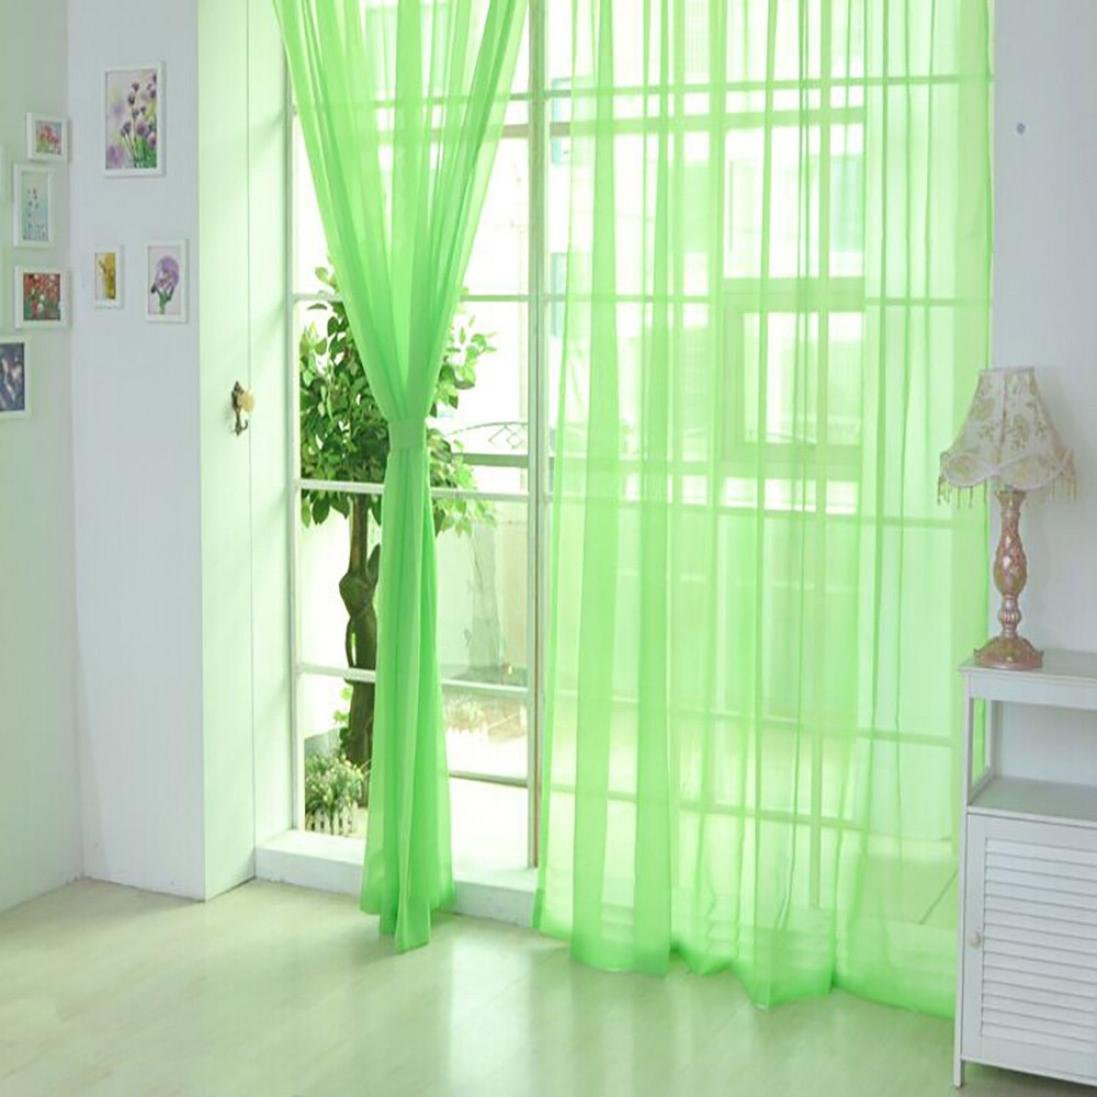 Qisc Home Decoration 1 Pieces Sheer Curtains Window Treatment Rod Pocket Tulle Sheer Voile Curtains/Drapes/Panels (Multicolor C)